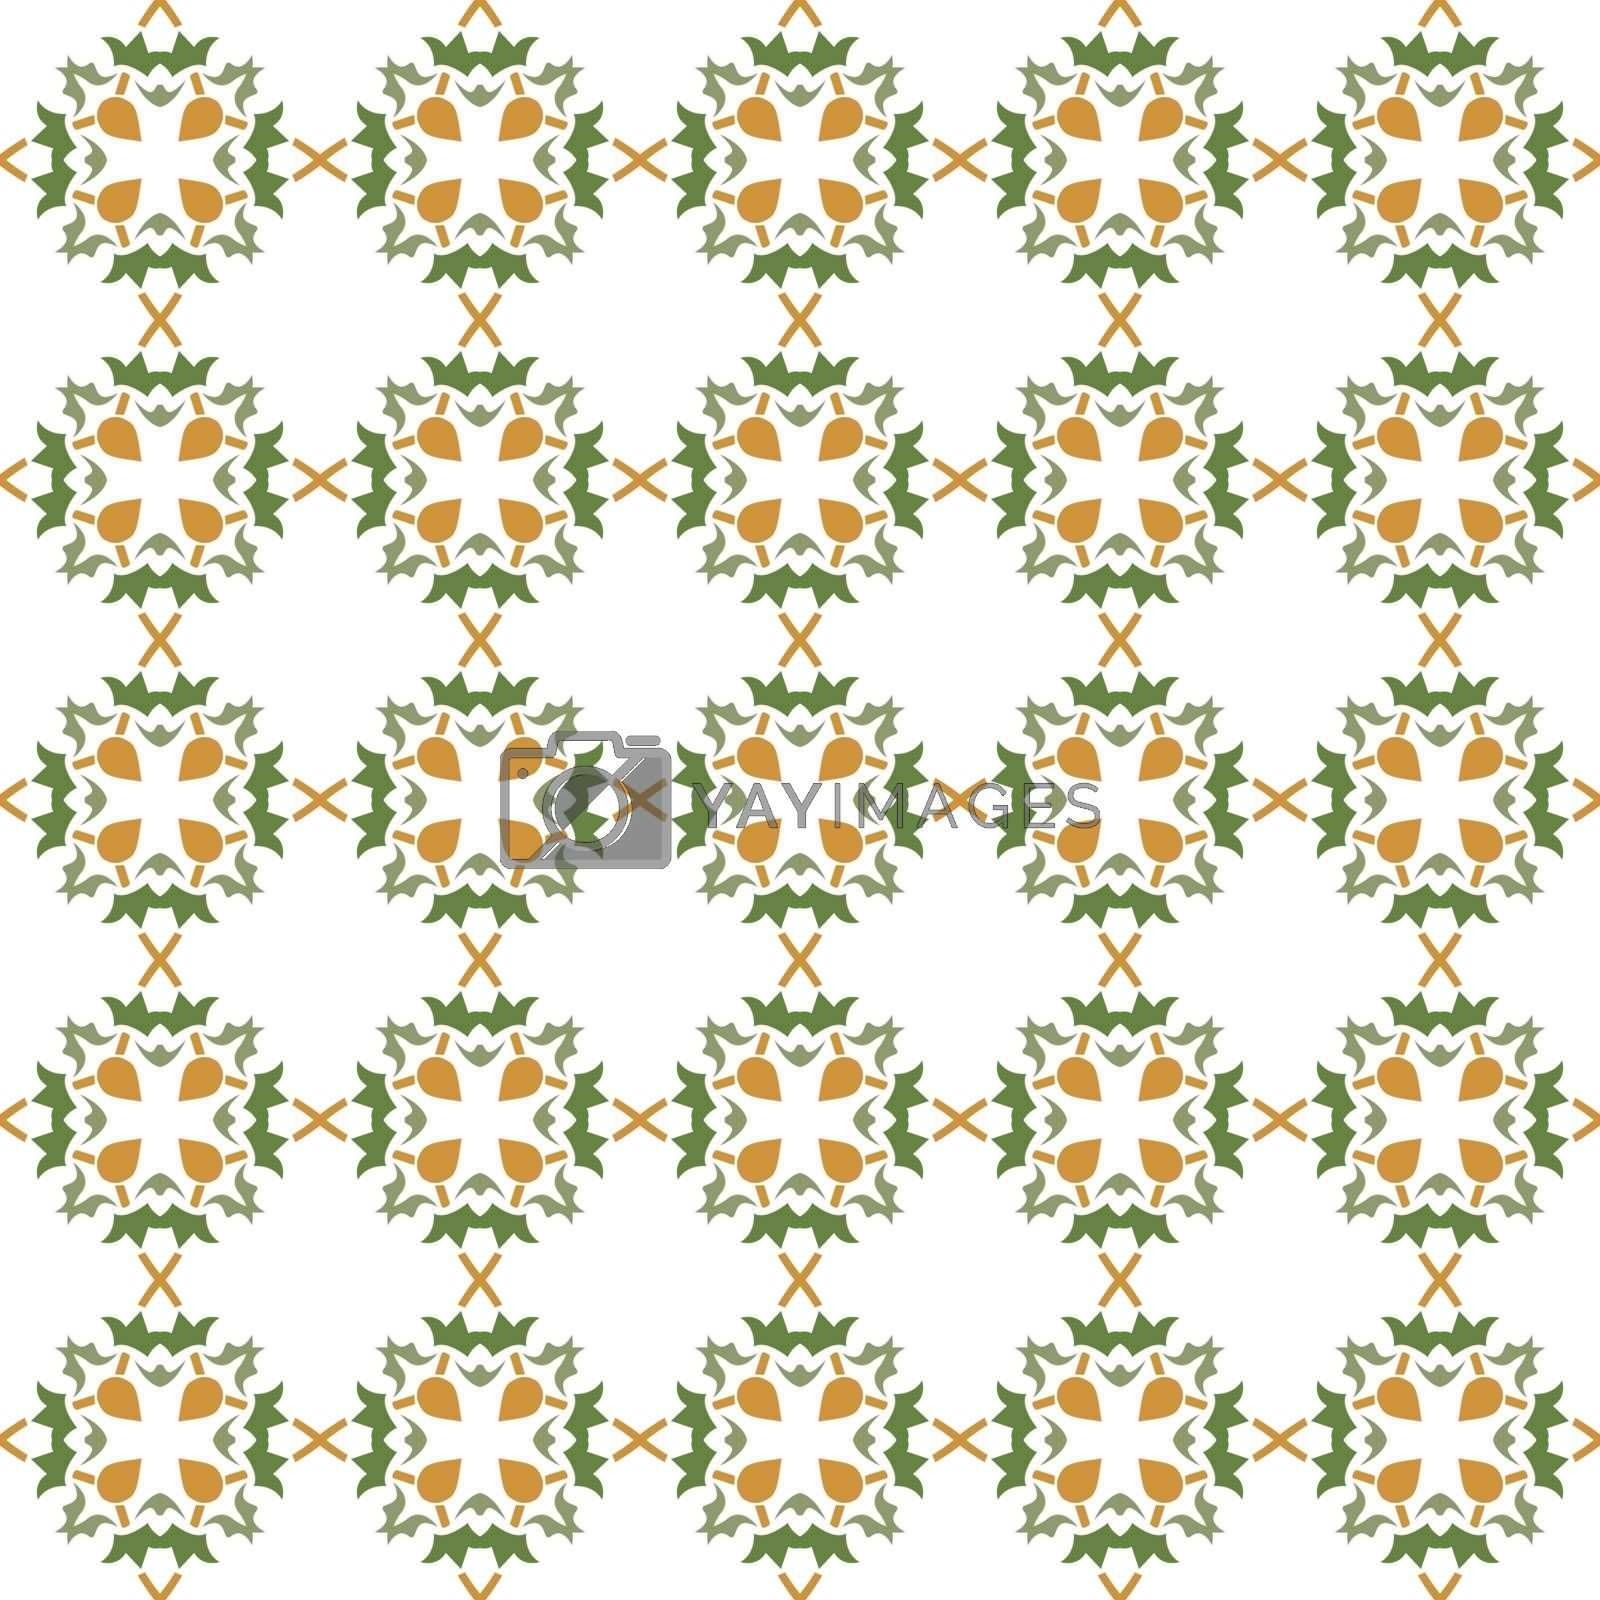 Abstract seamless ornament pattern. Vector illustration.